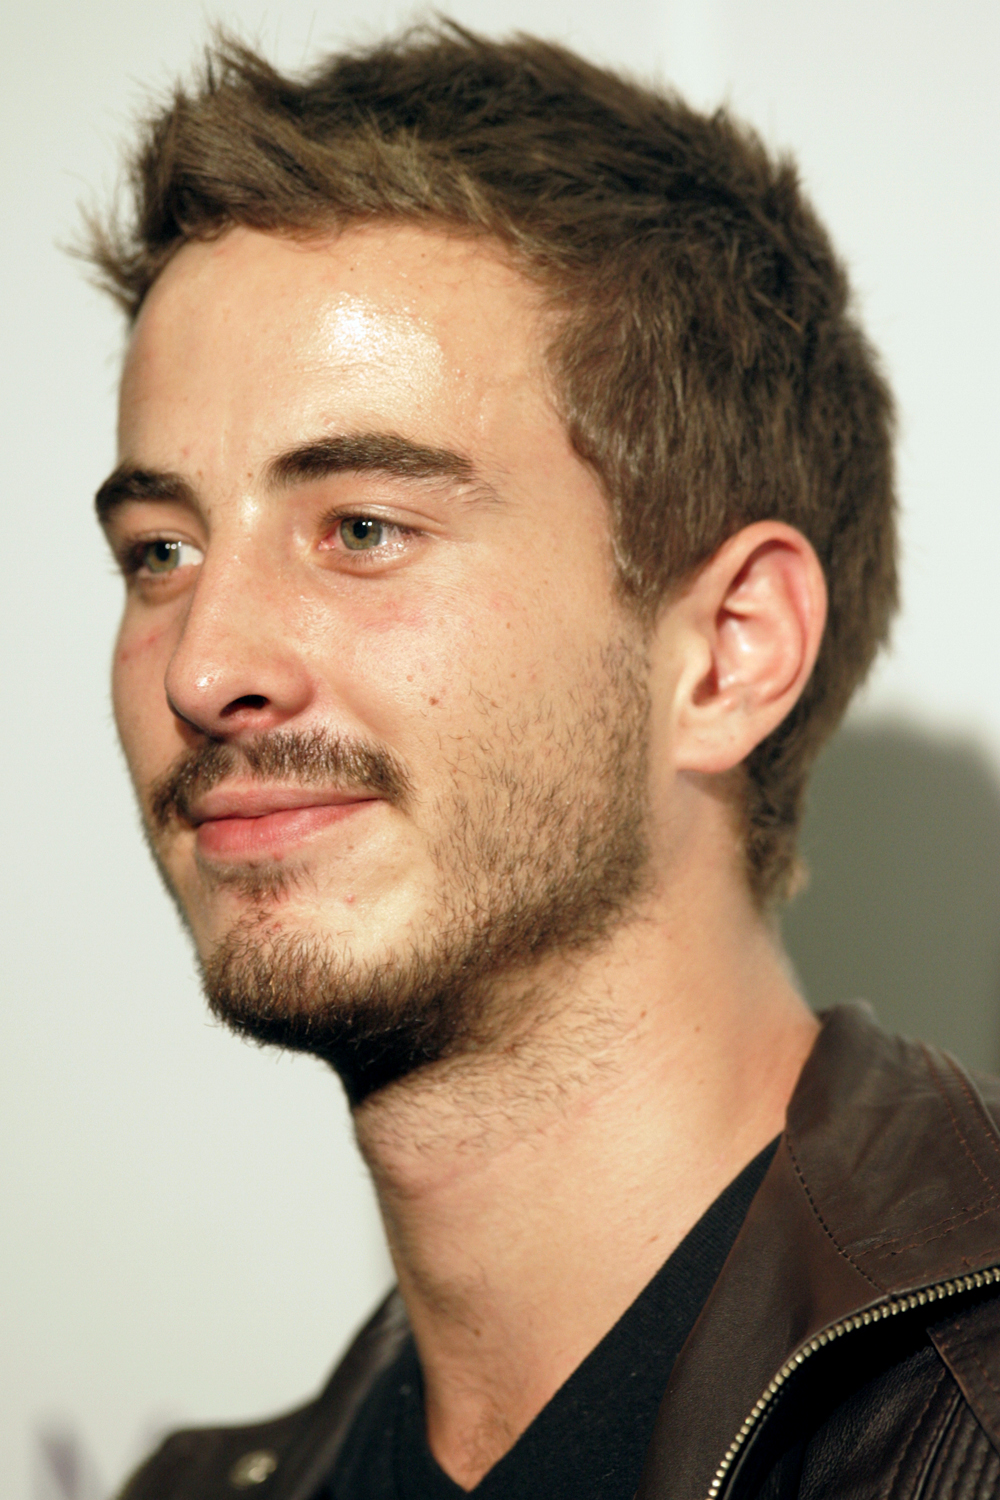 ryan corr facebookryan corr movies, ryan corr filmography, ryan corr instagram, ryan corr craig stott, ryan corr wikipedia, ryan corr, ryan corr twitter, ryan corr facebook, ryan corr girlfriend, ryan corr imdb, ryan corr and dena kaplan, ryan corr girlfriend 2015, ryan corr drugs, ryan corr biography, ryan corr holding the man, ryan corr partner, ryan corr banished, ryan corr interview, ryan corr new movie, ryan corr imogen bailey